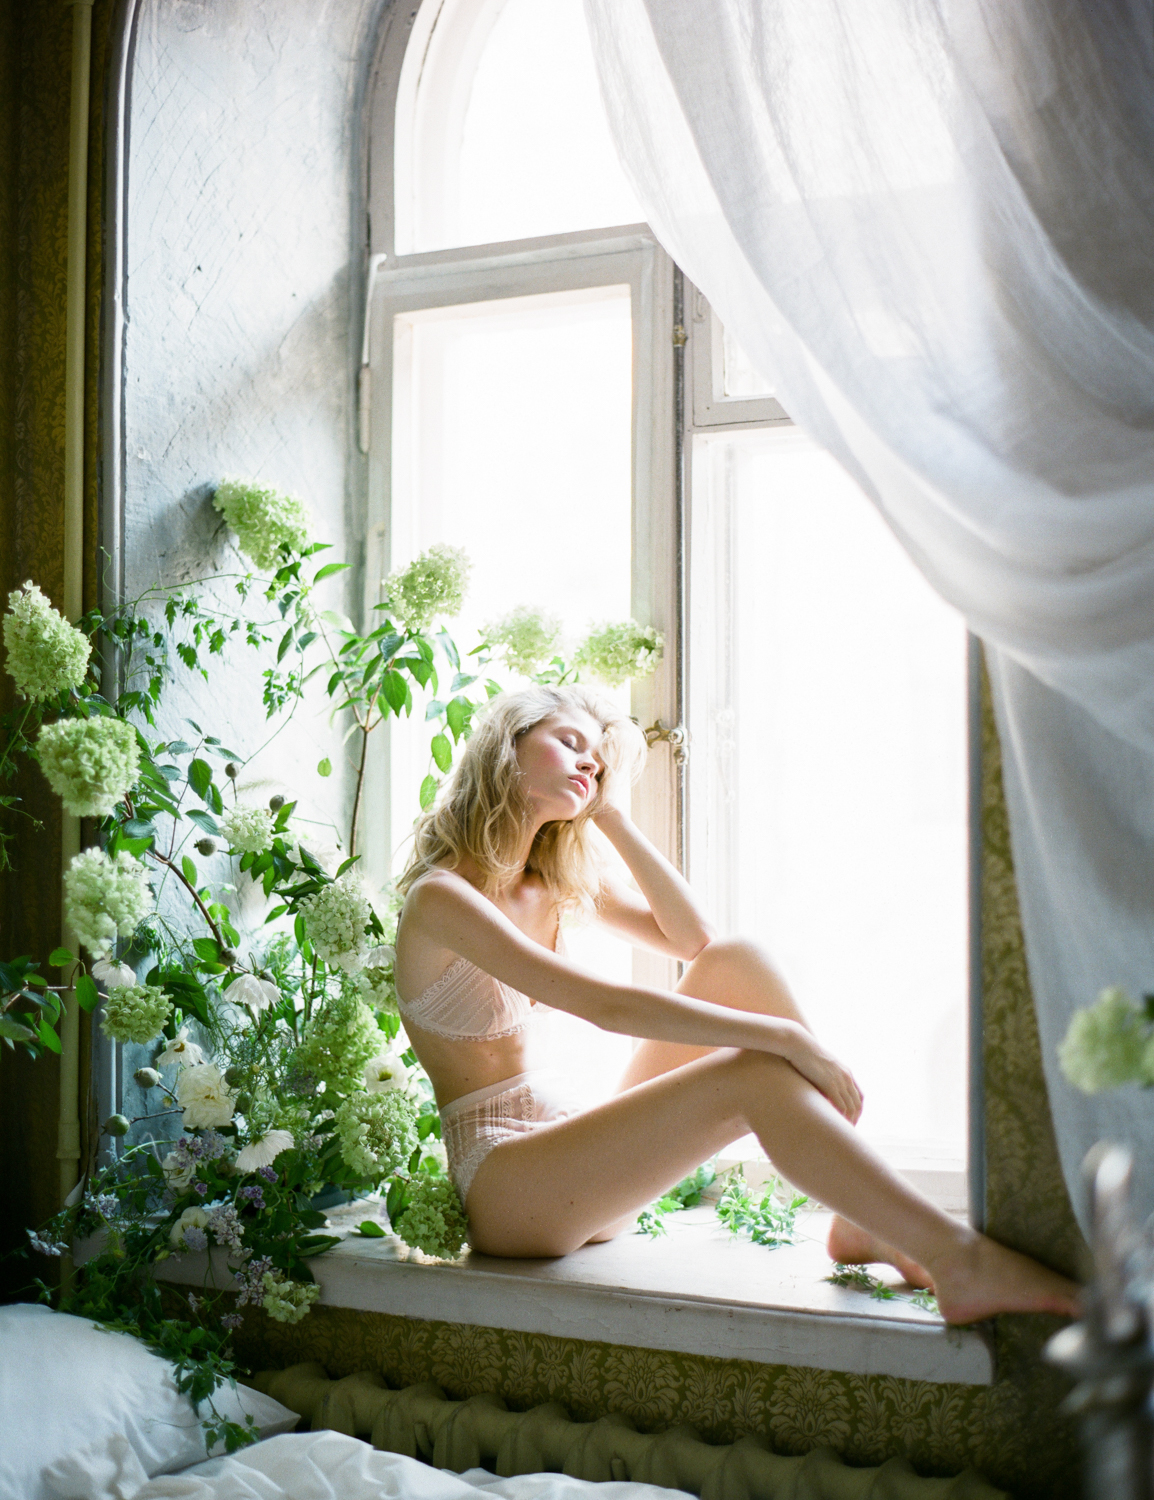 masha golub photography 4 - MORNING RHAPSODY